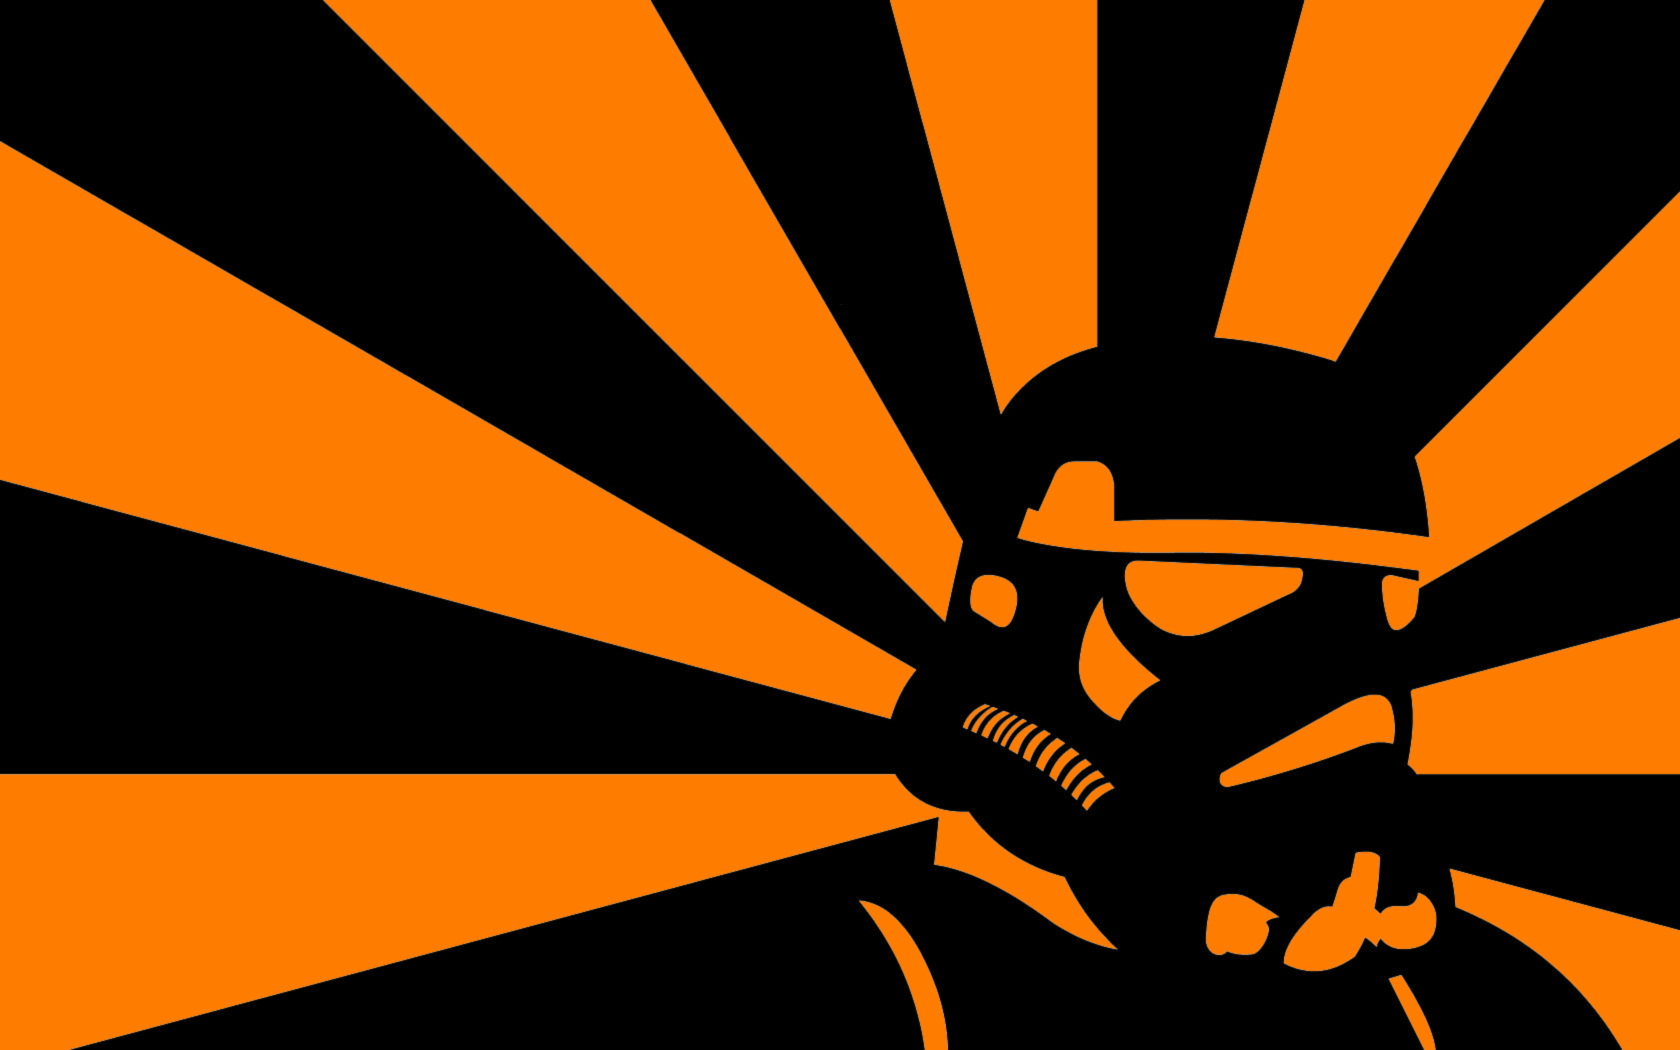 Star Wars Wallpapers 1680x1050 - Wallpaper Cave